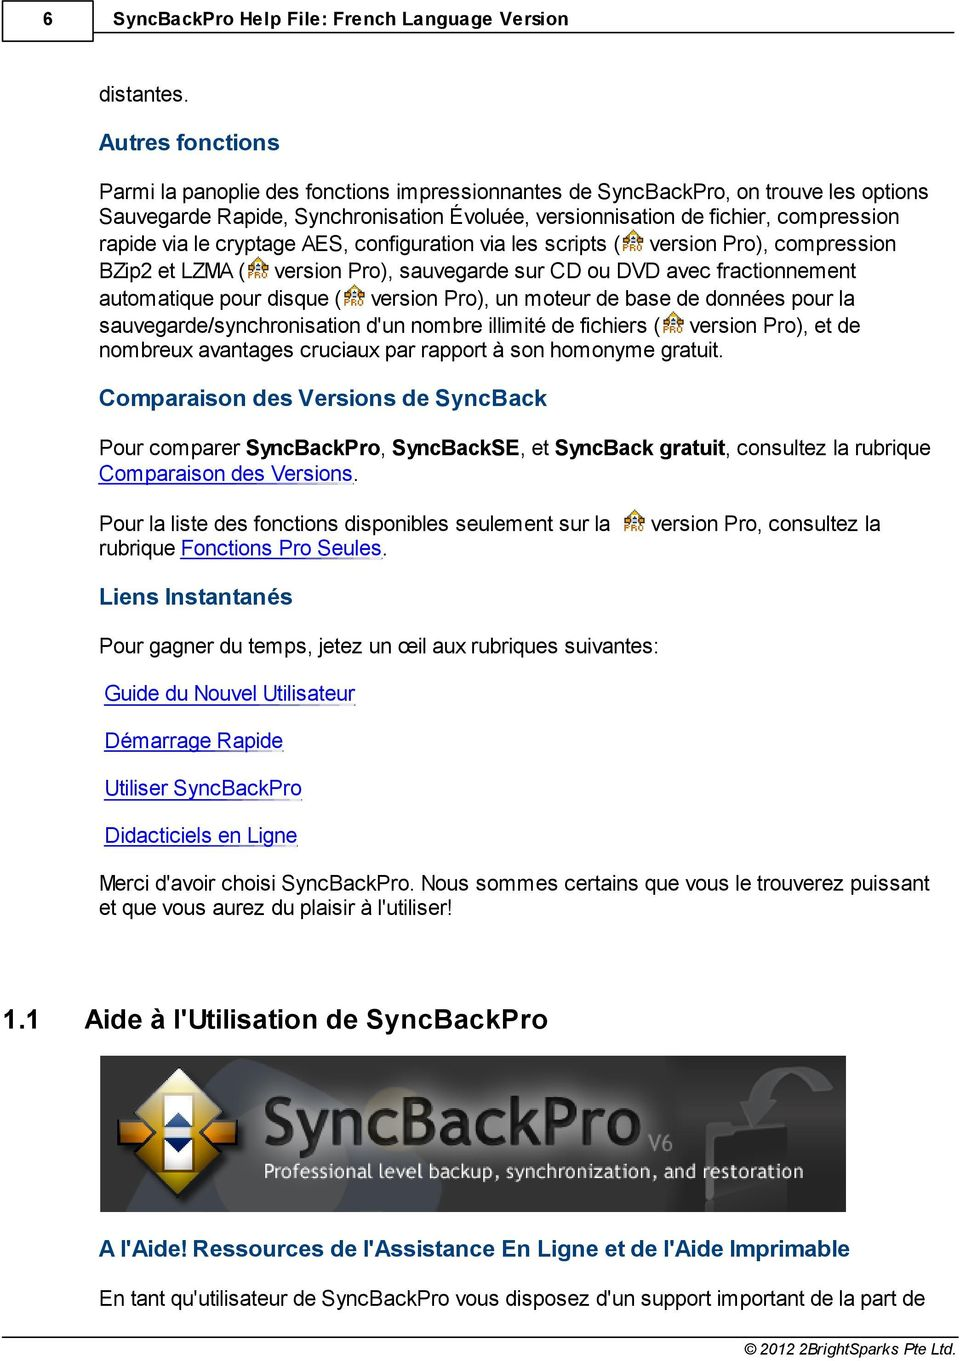 le cryptage AES, configuration via les scripts ( version Pro), compression BZip2 et LZMA ( version Pro), sauvegarde sur CD ou DVD avec fractionnement automatique pour disque ( version Pro), un moteur